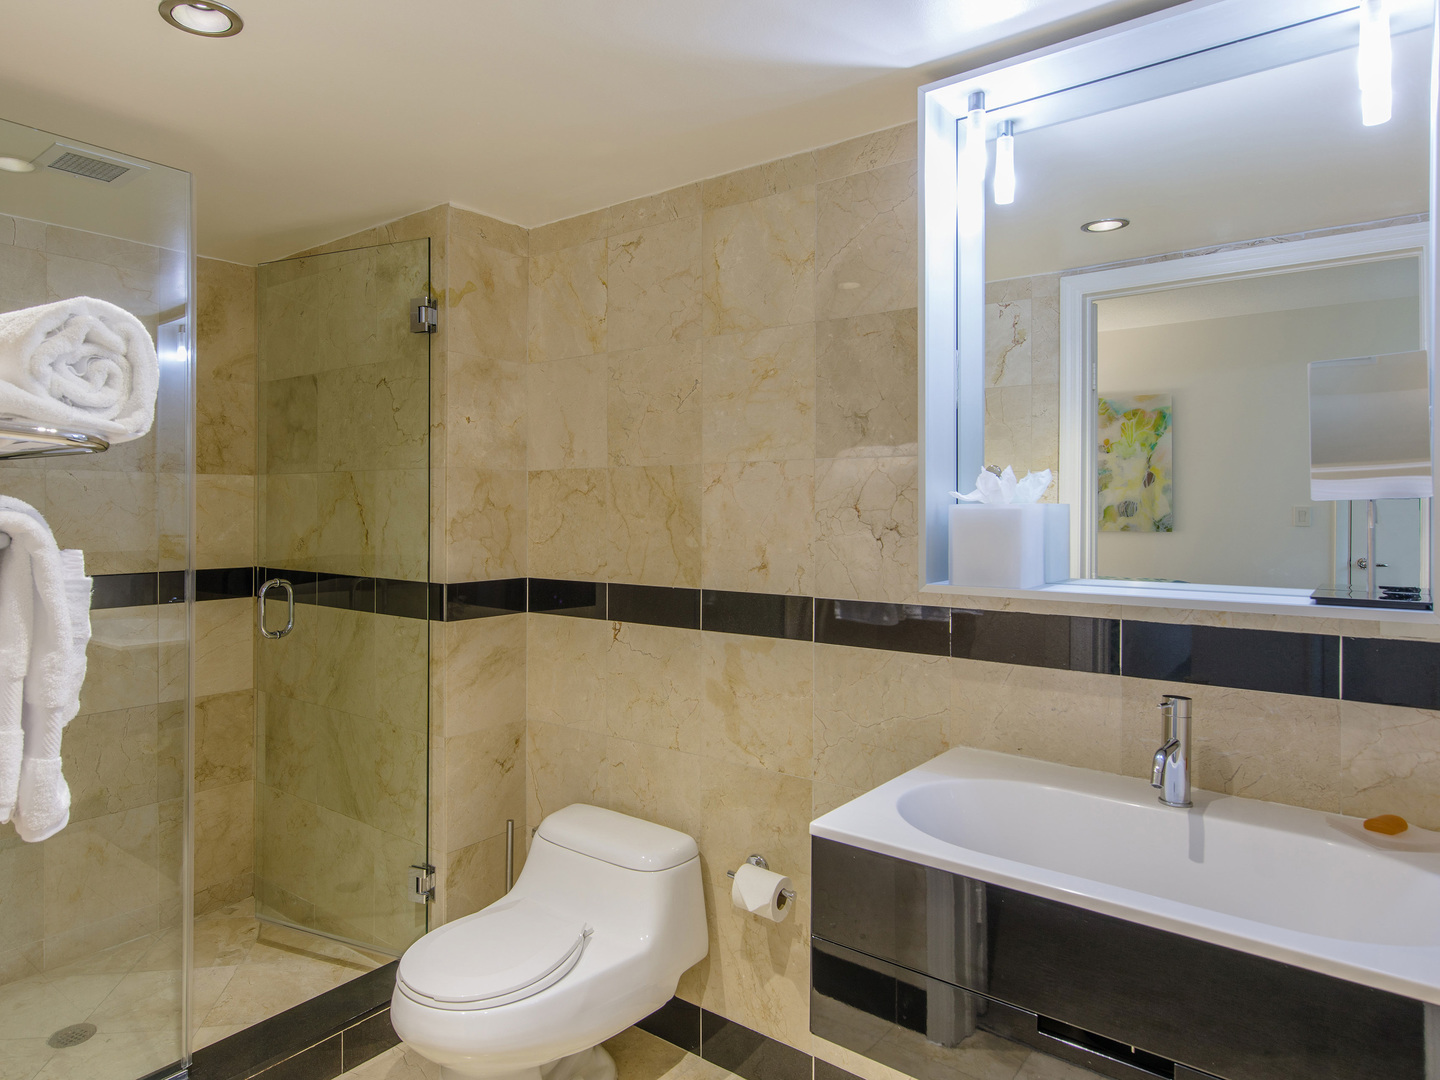 Marriott Vacation Club Pulse<span class='trademark'>®</span>, South Beach Studio Suite Bathroom. Marriott Vacation Club Pulse<span class='trademark'>®</span>, South Beach is located in Miami Beach, Florida United States.